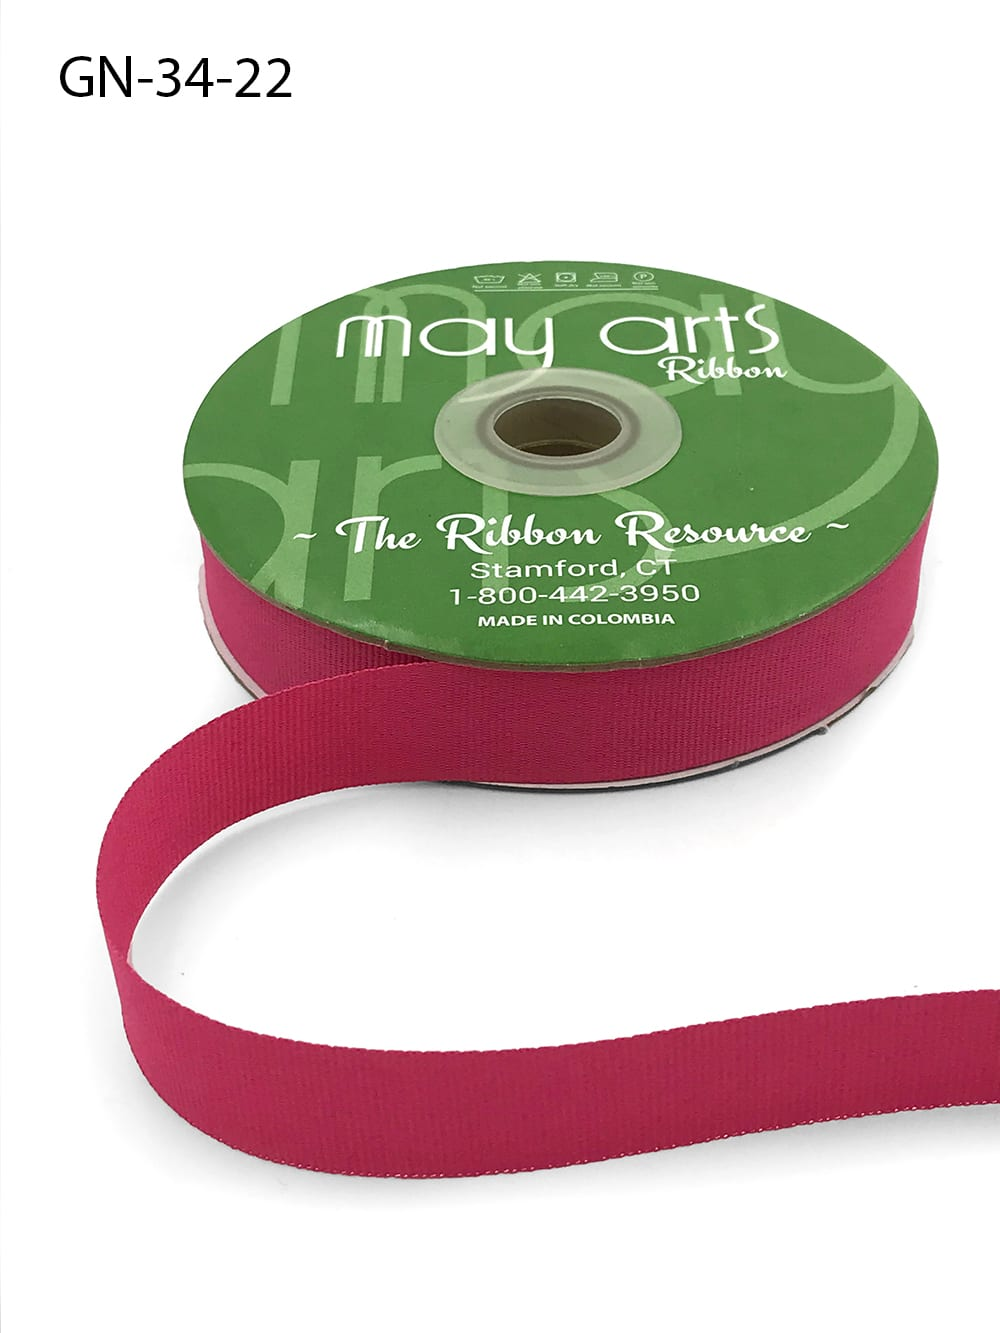 ~3/4 Inch Light-Weight Flat Grosgrain Ribbon with Woven Edge - GN-34-22 Fuschia